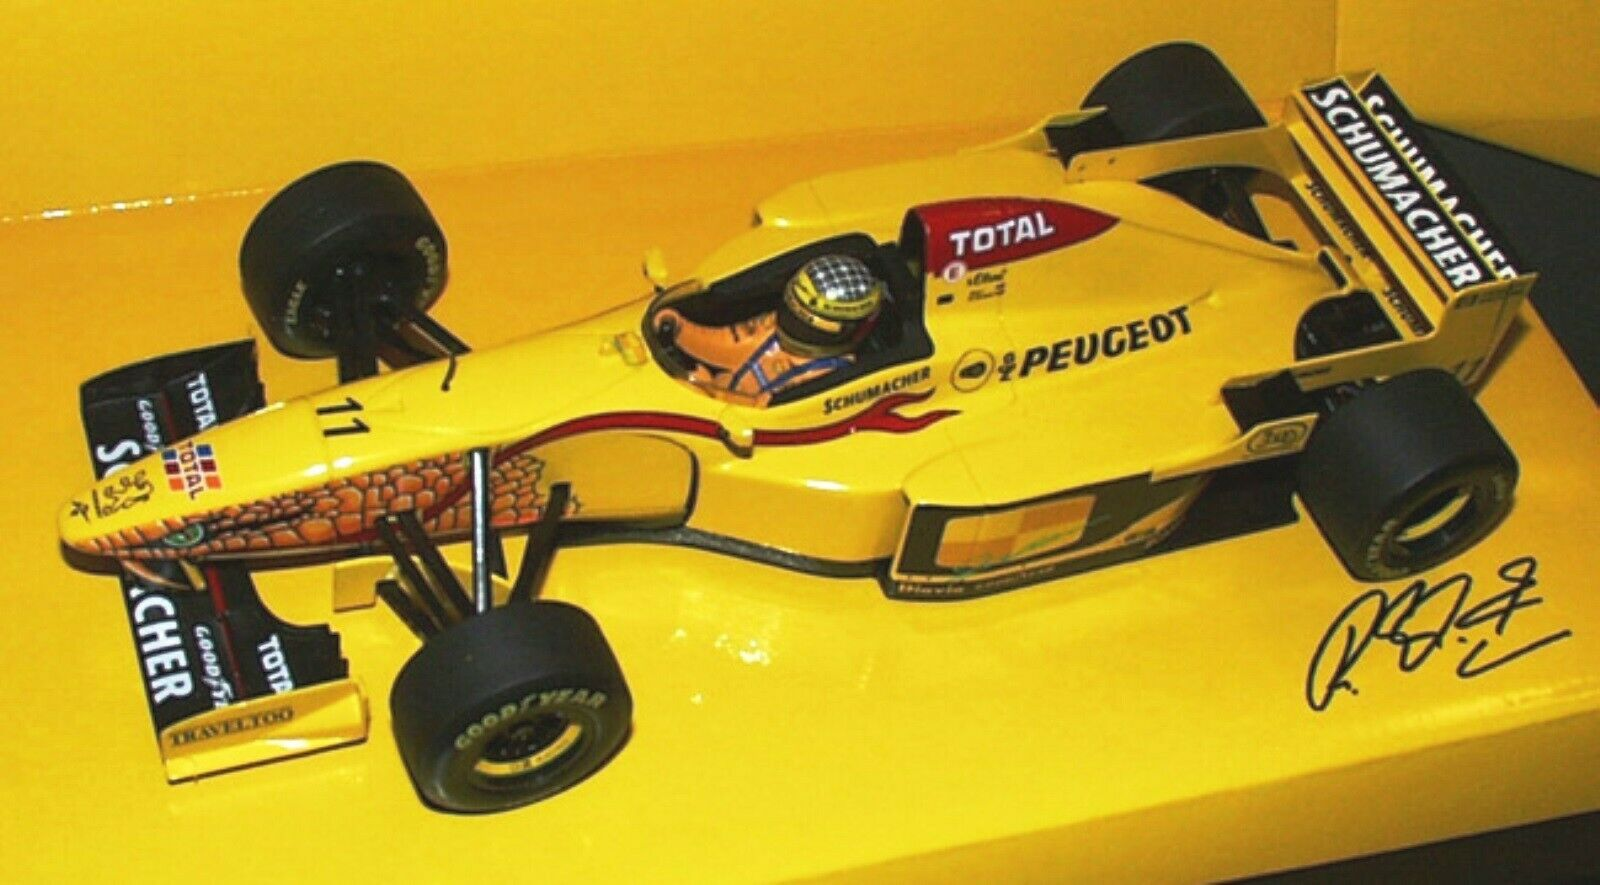 WOW EXTREMELY RARE Jordan 197 Peugeot R Schumacher Launch 1997 1 18 Minichamps